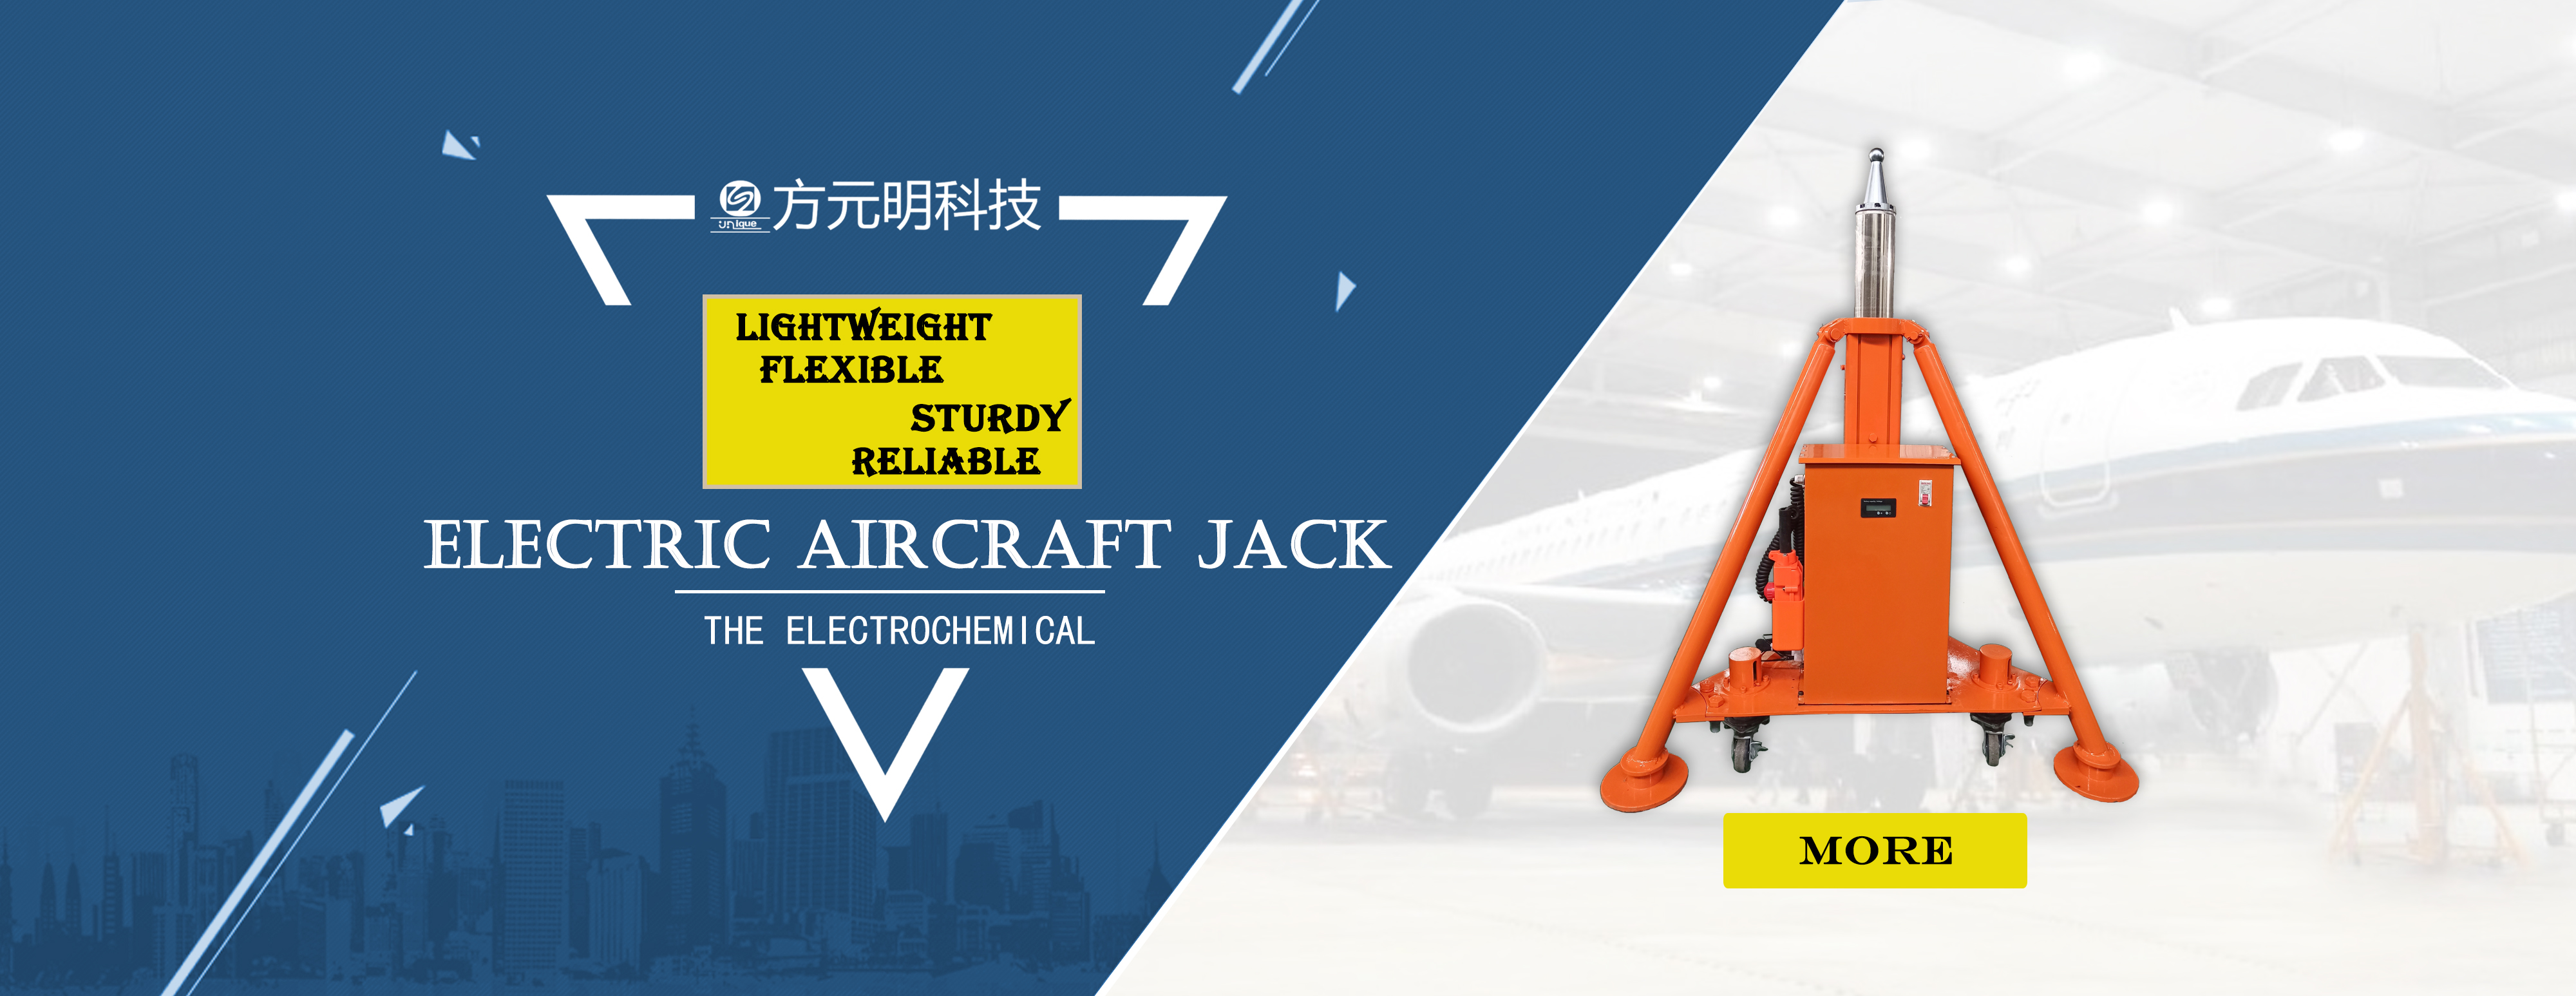 Heavy duty servo electric cylinder,6DOF,Fully electrified car tailgate,Leveling Control System,Barometric pressure altimeter